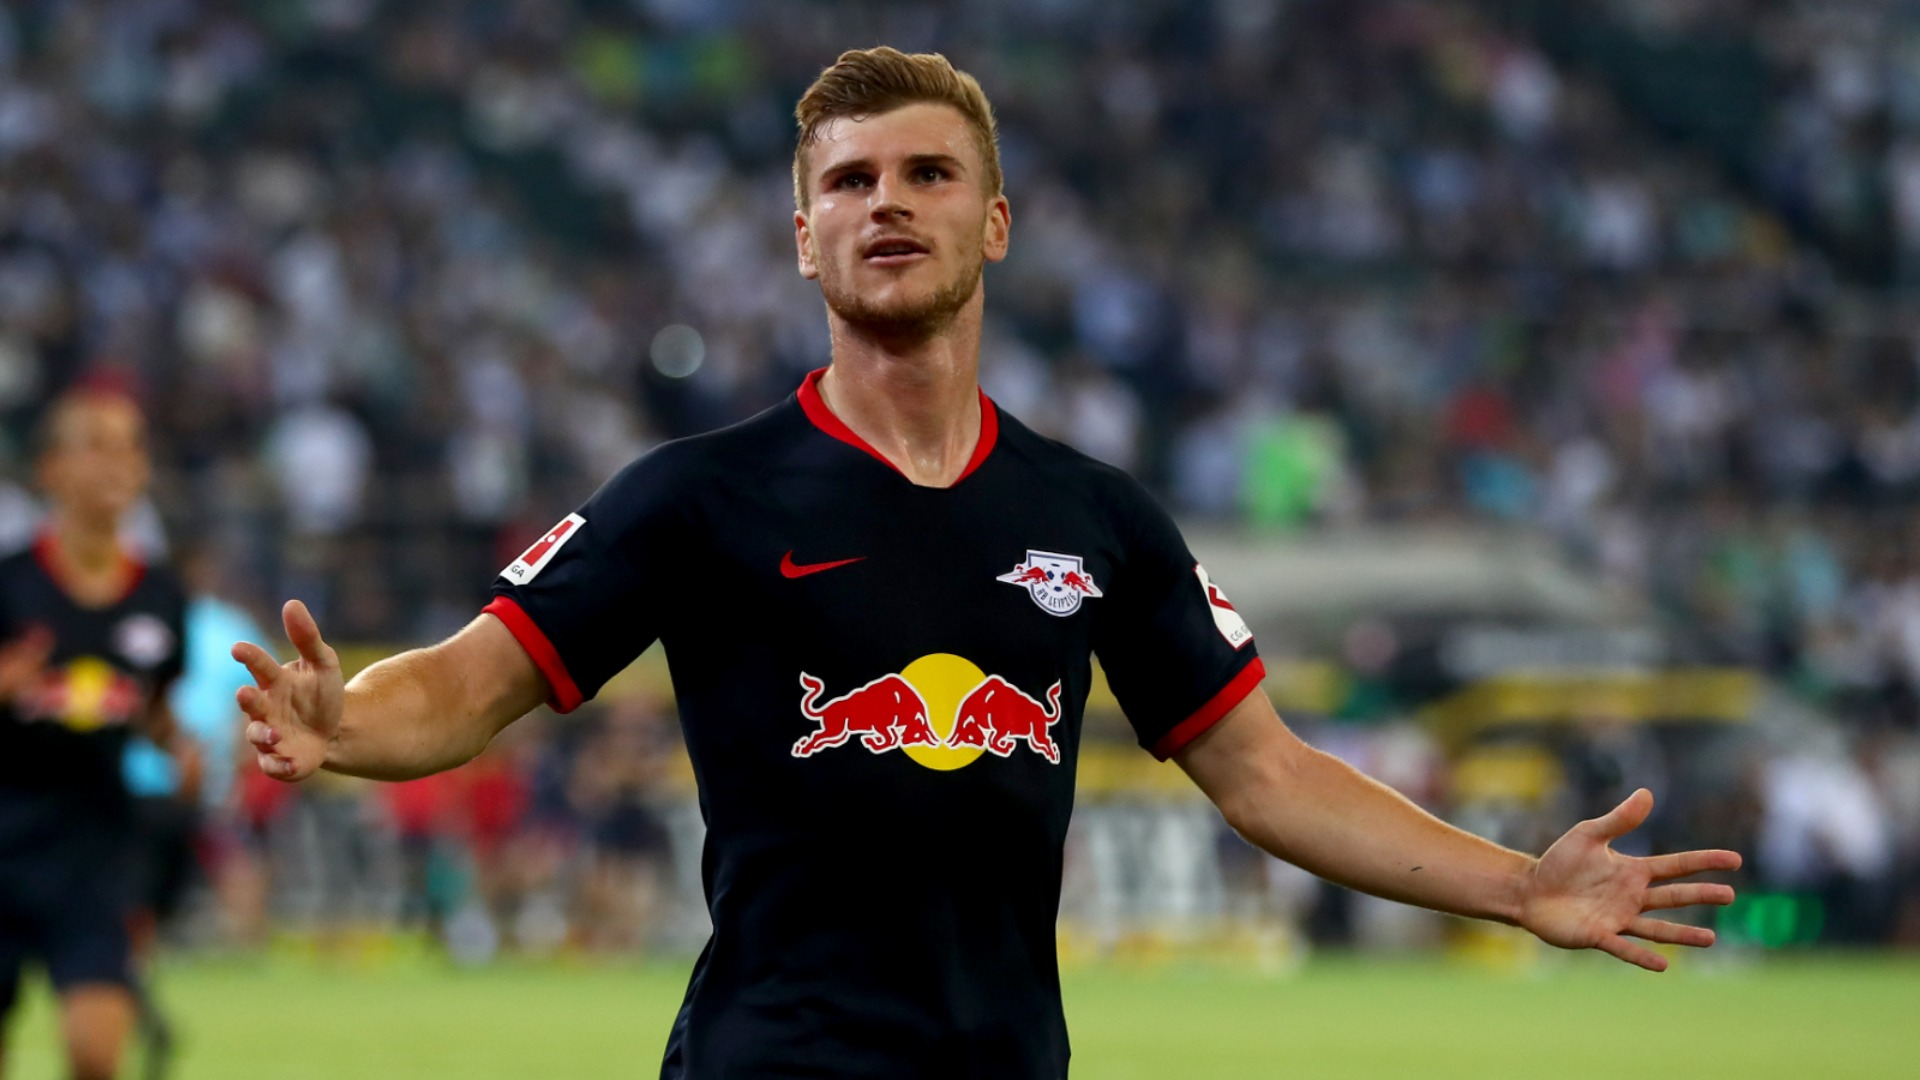 'Werner is able to really hurt Bayern' - Striker key as Nagelsmann targets victory in clash with Bundesliga champions